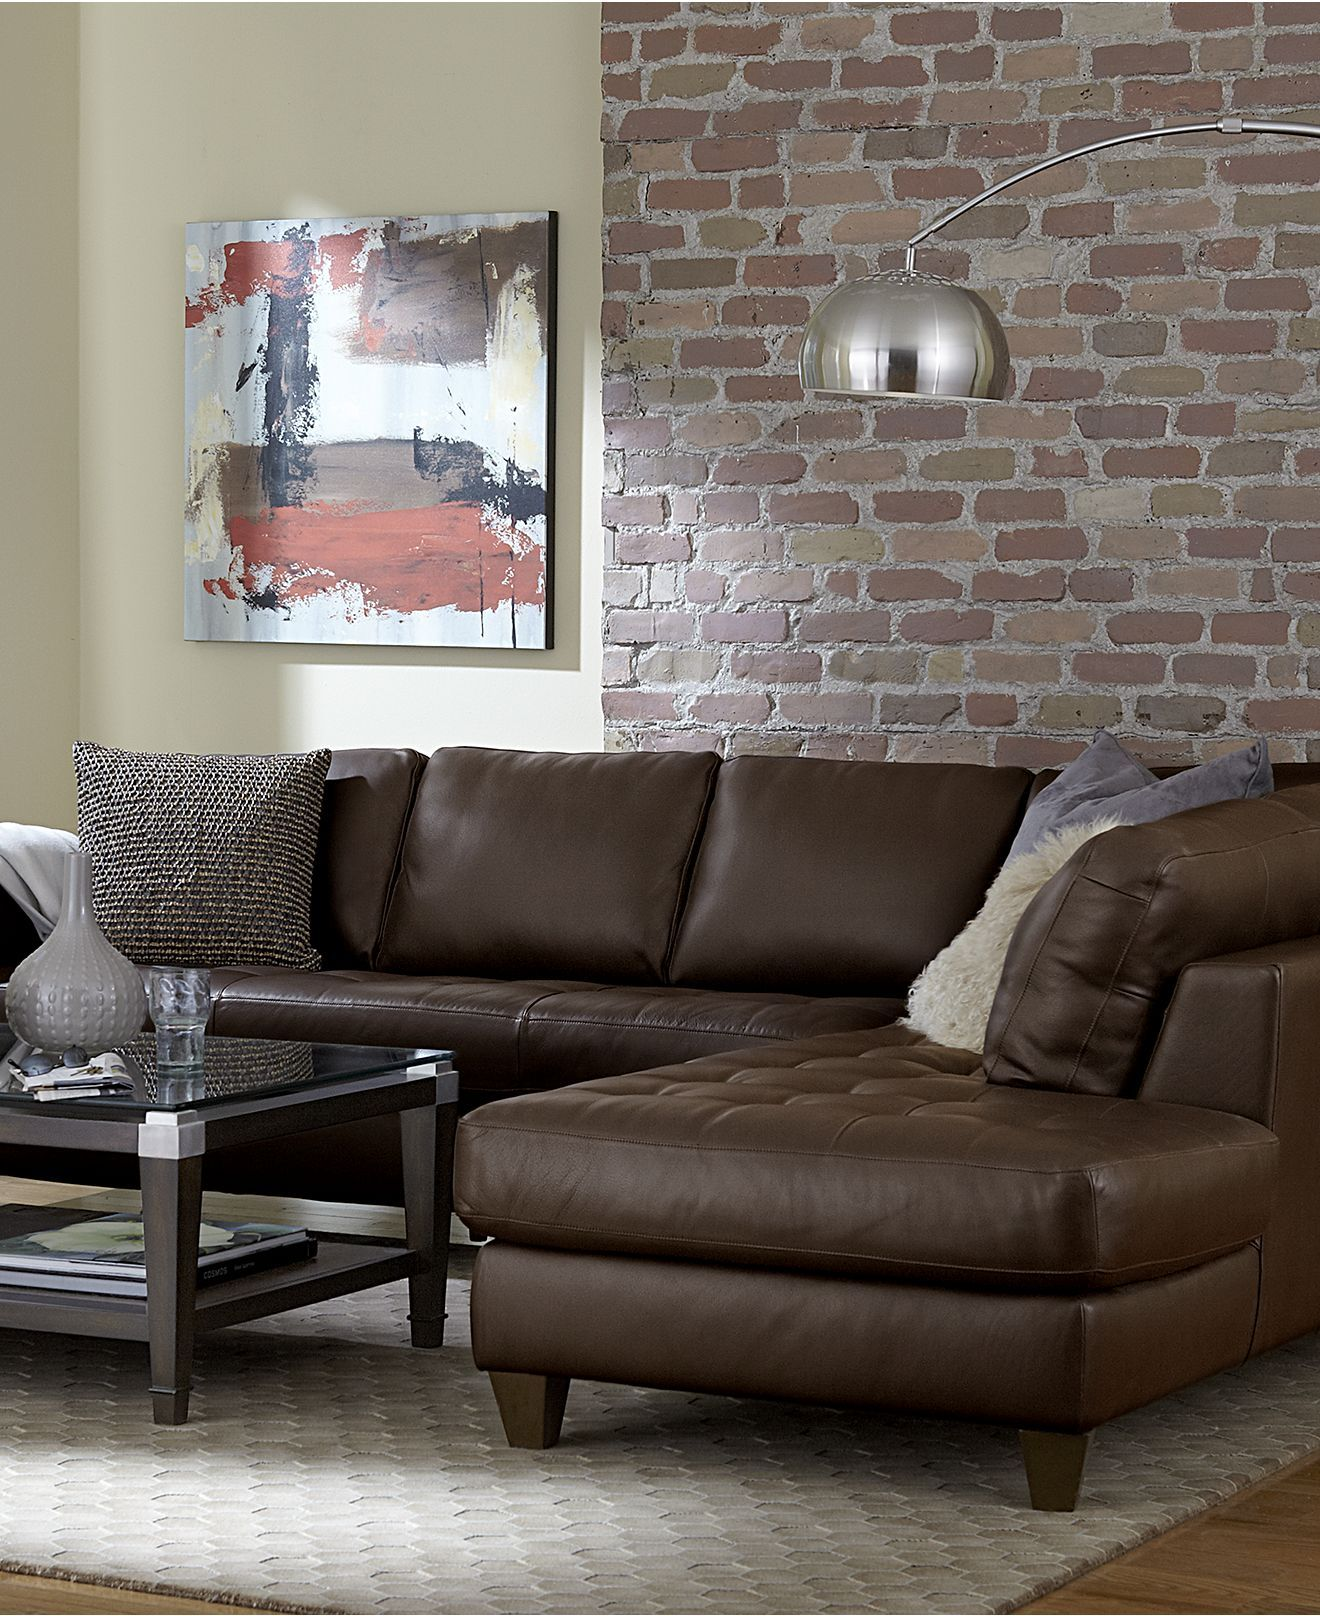 Milano Leather Sectional from Macy's Home Decor